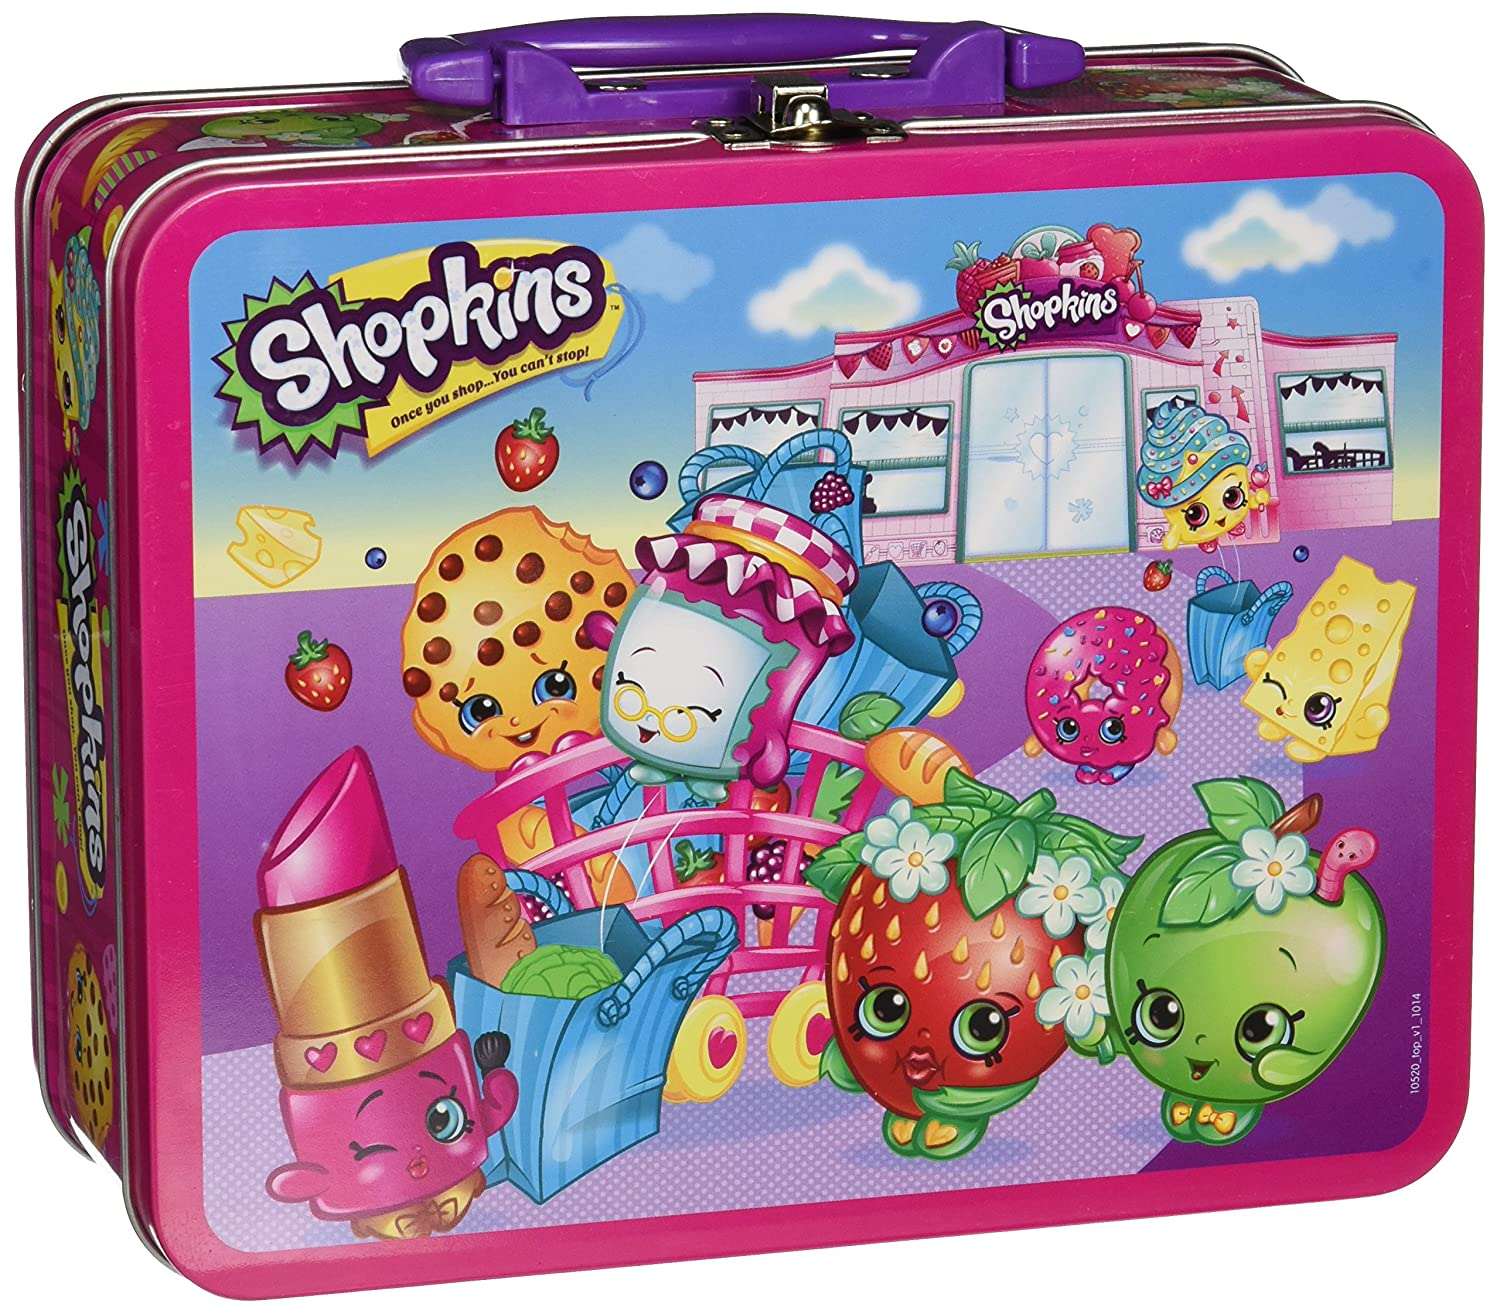 Pressman toys shopkins assortment in lunch box puzzle 100 for Decor 6 piece lunchbox